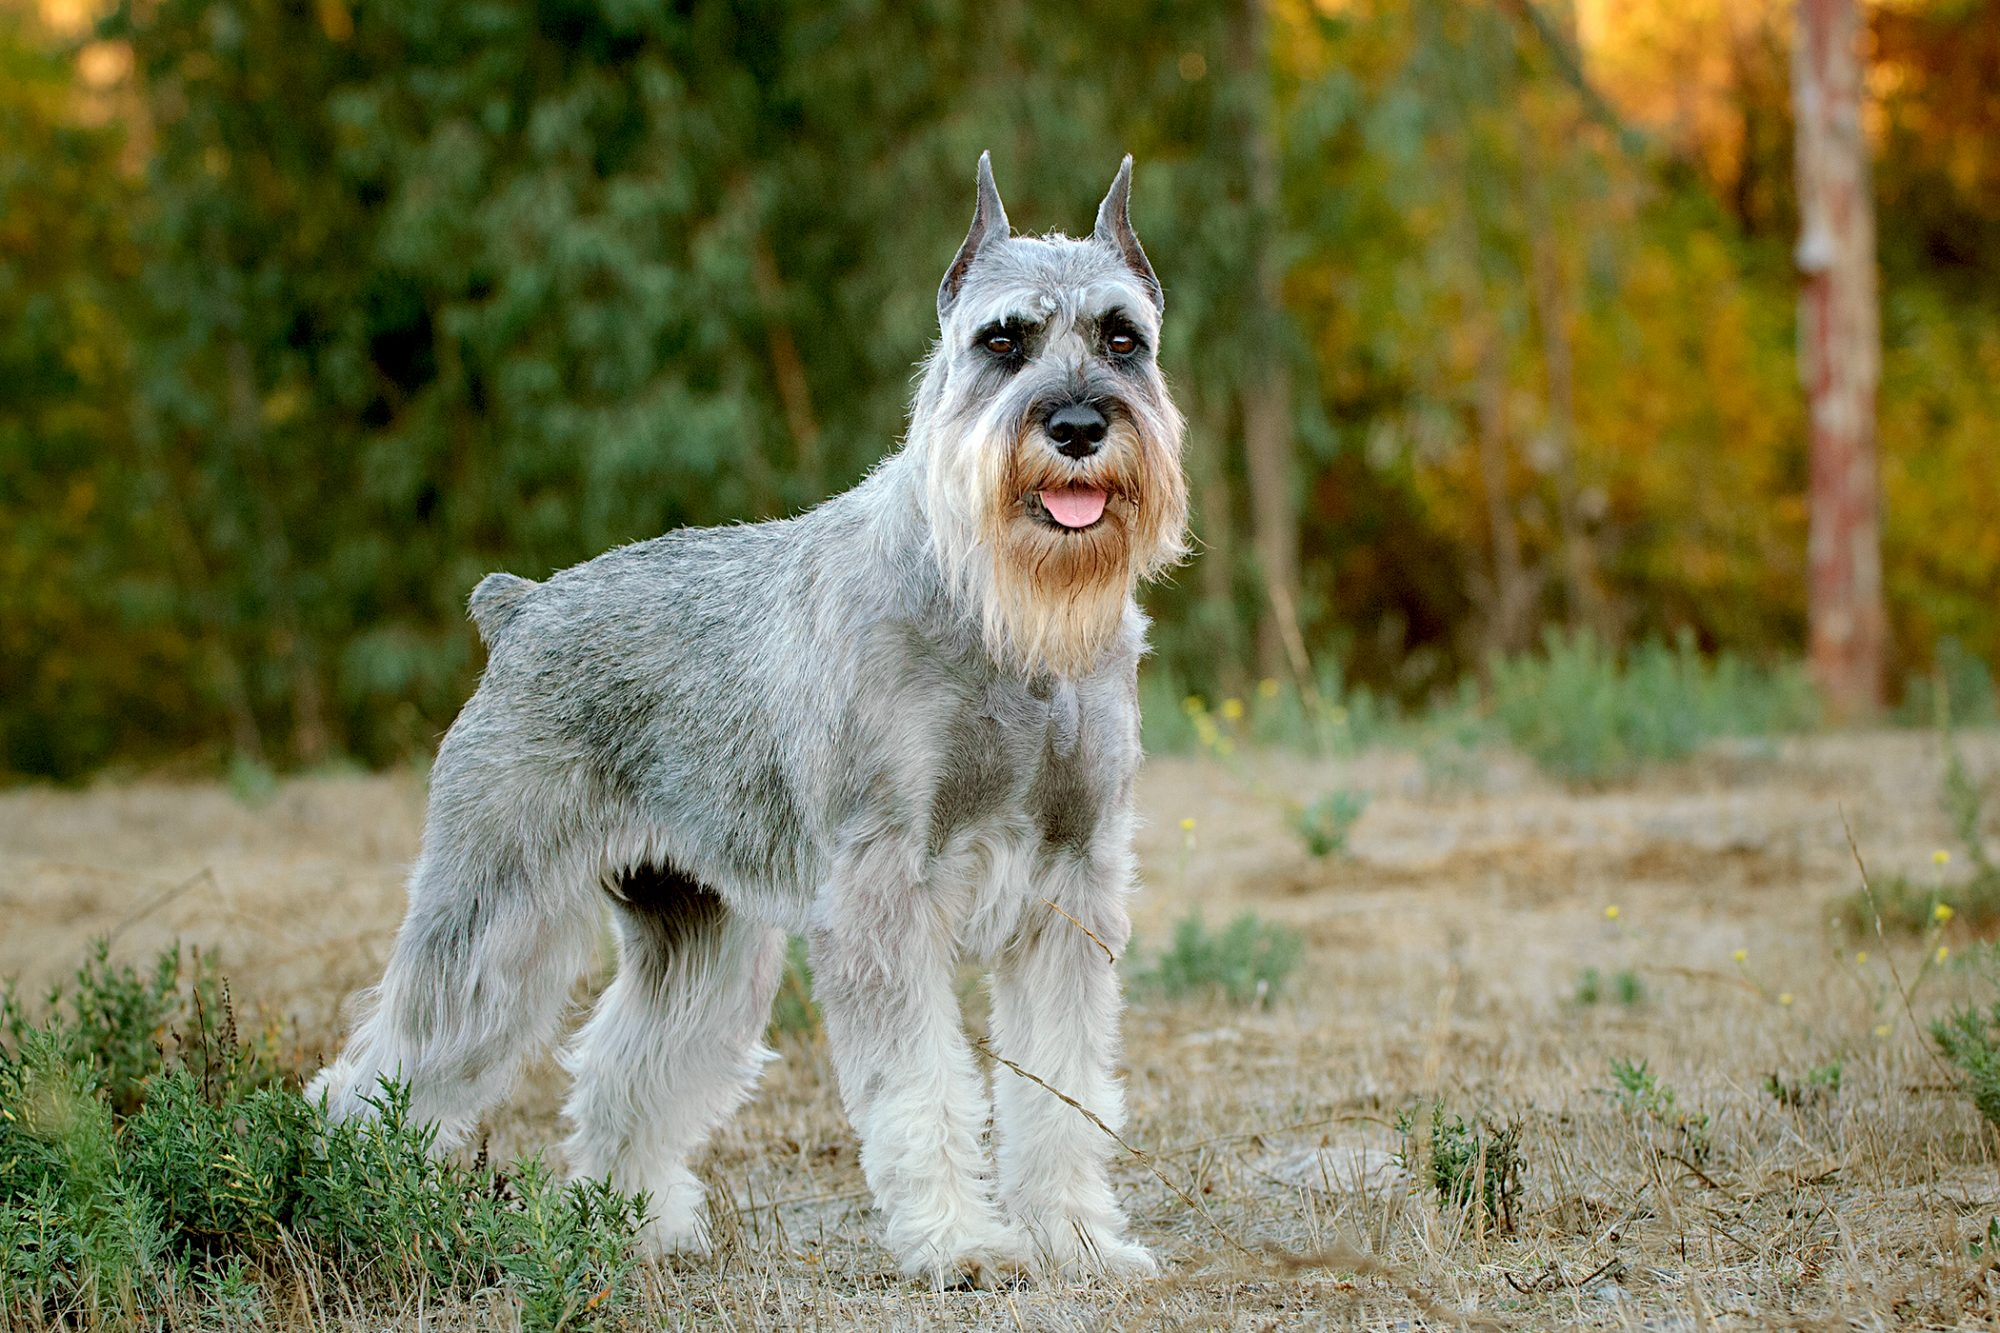 gray, white and tan standard schnauzer standing in field